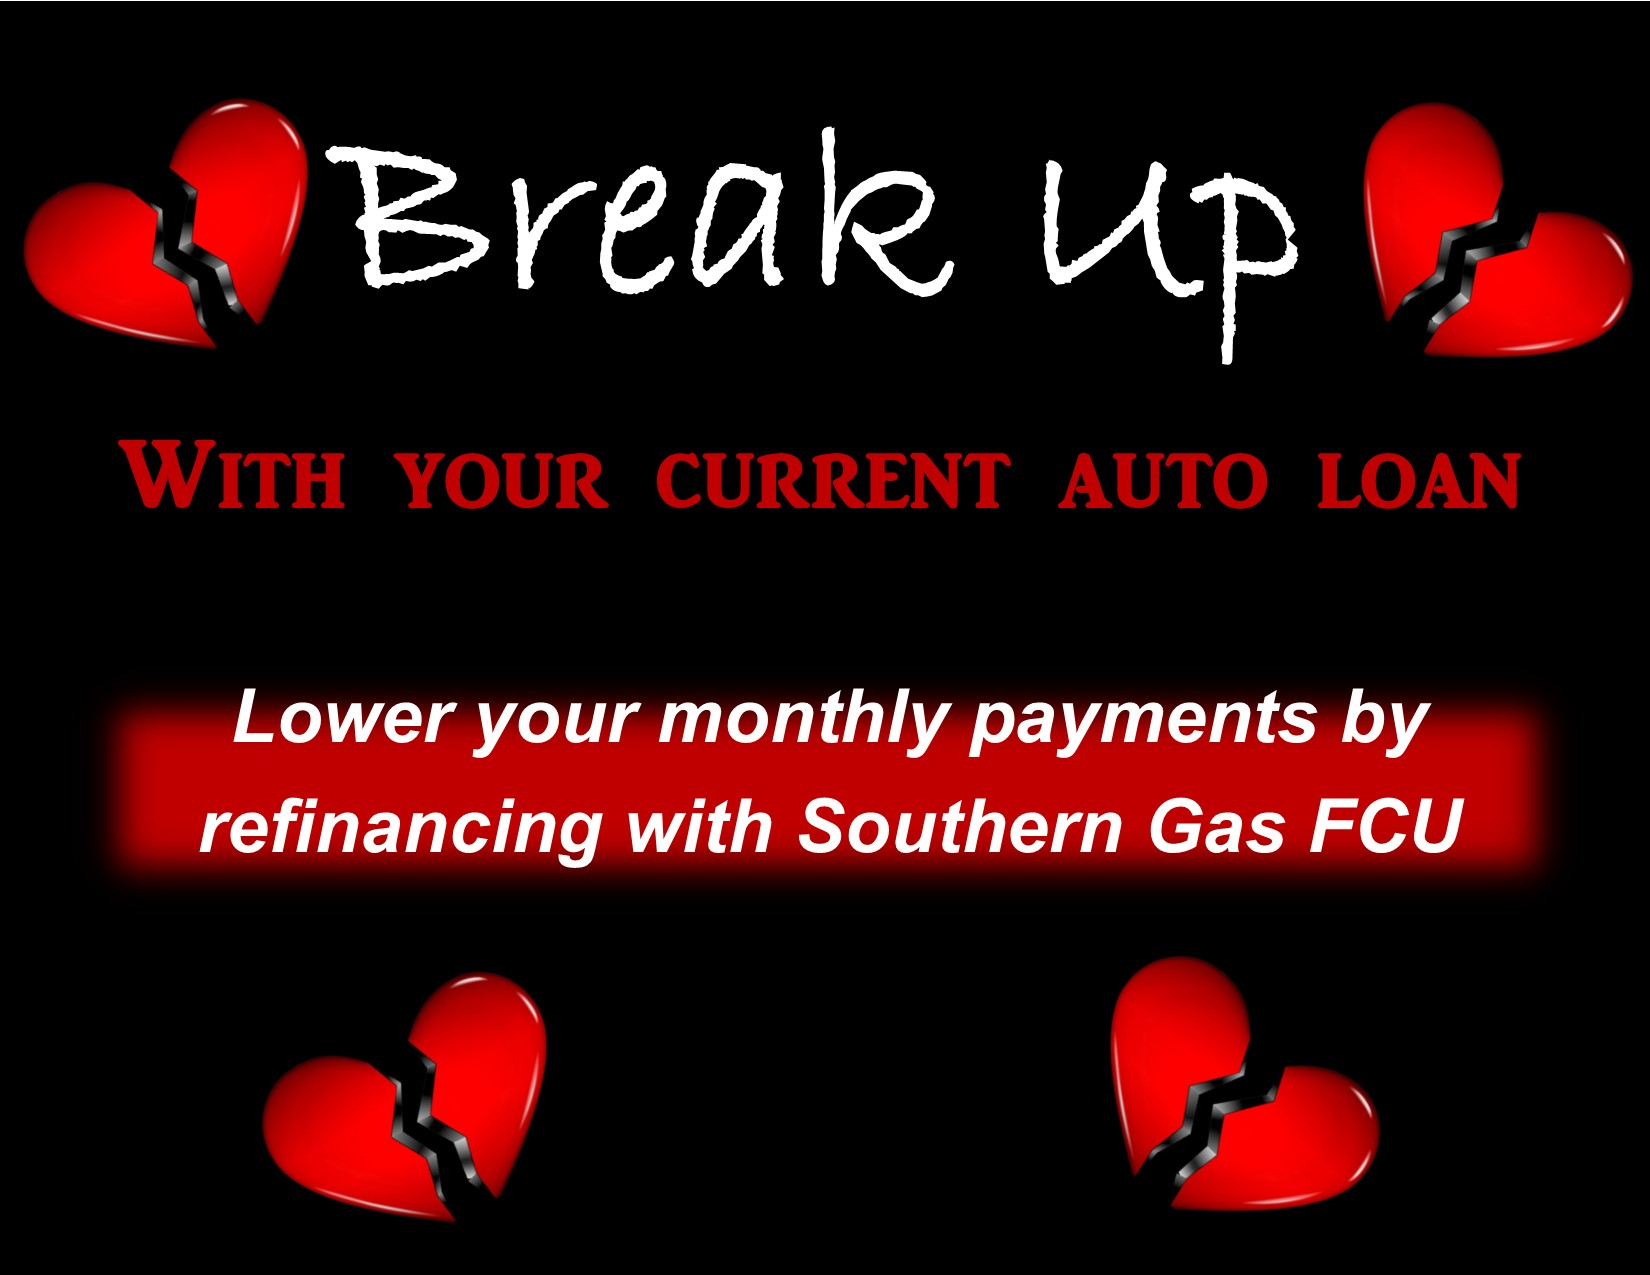 Switch your auto loan to Southern Gas and save!